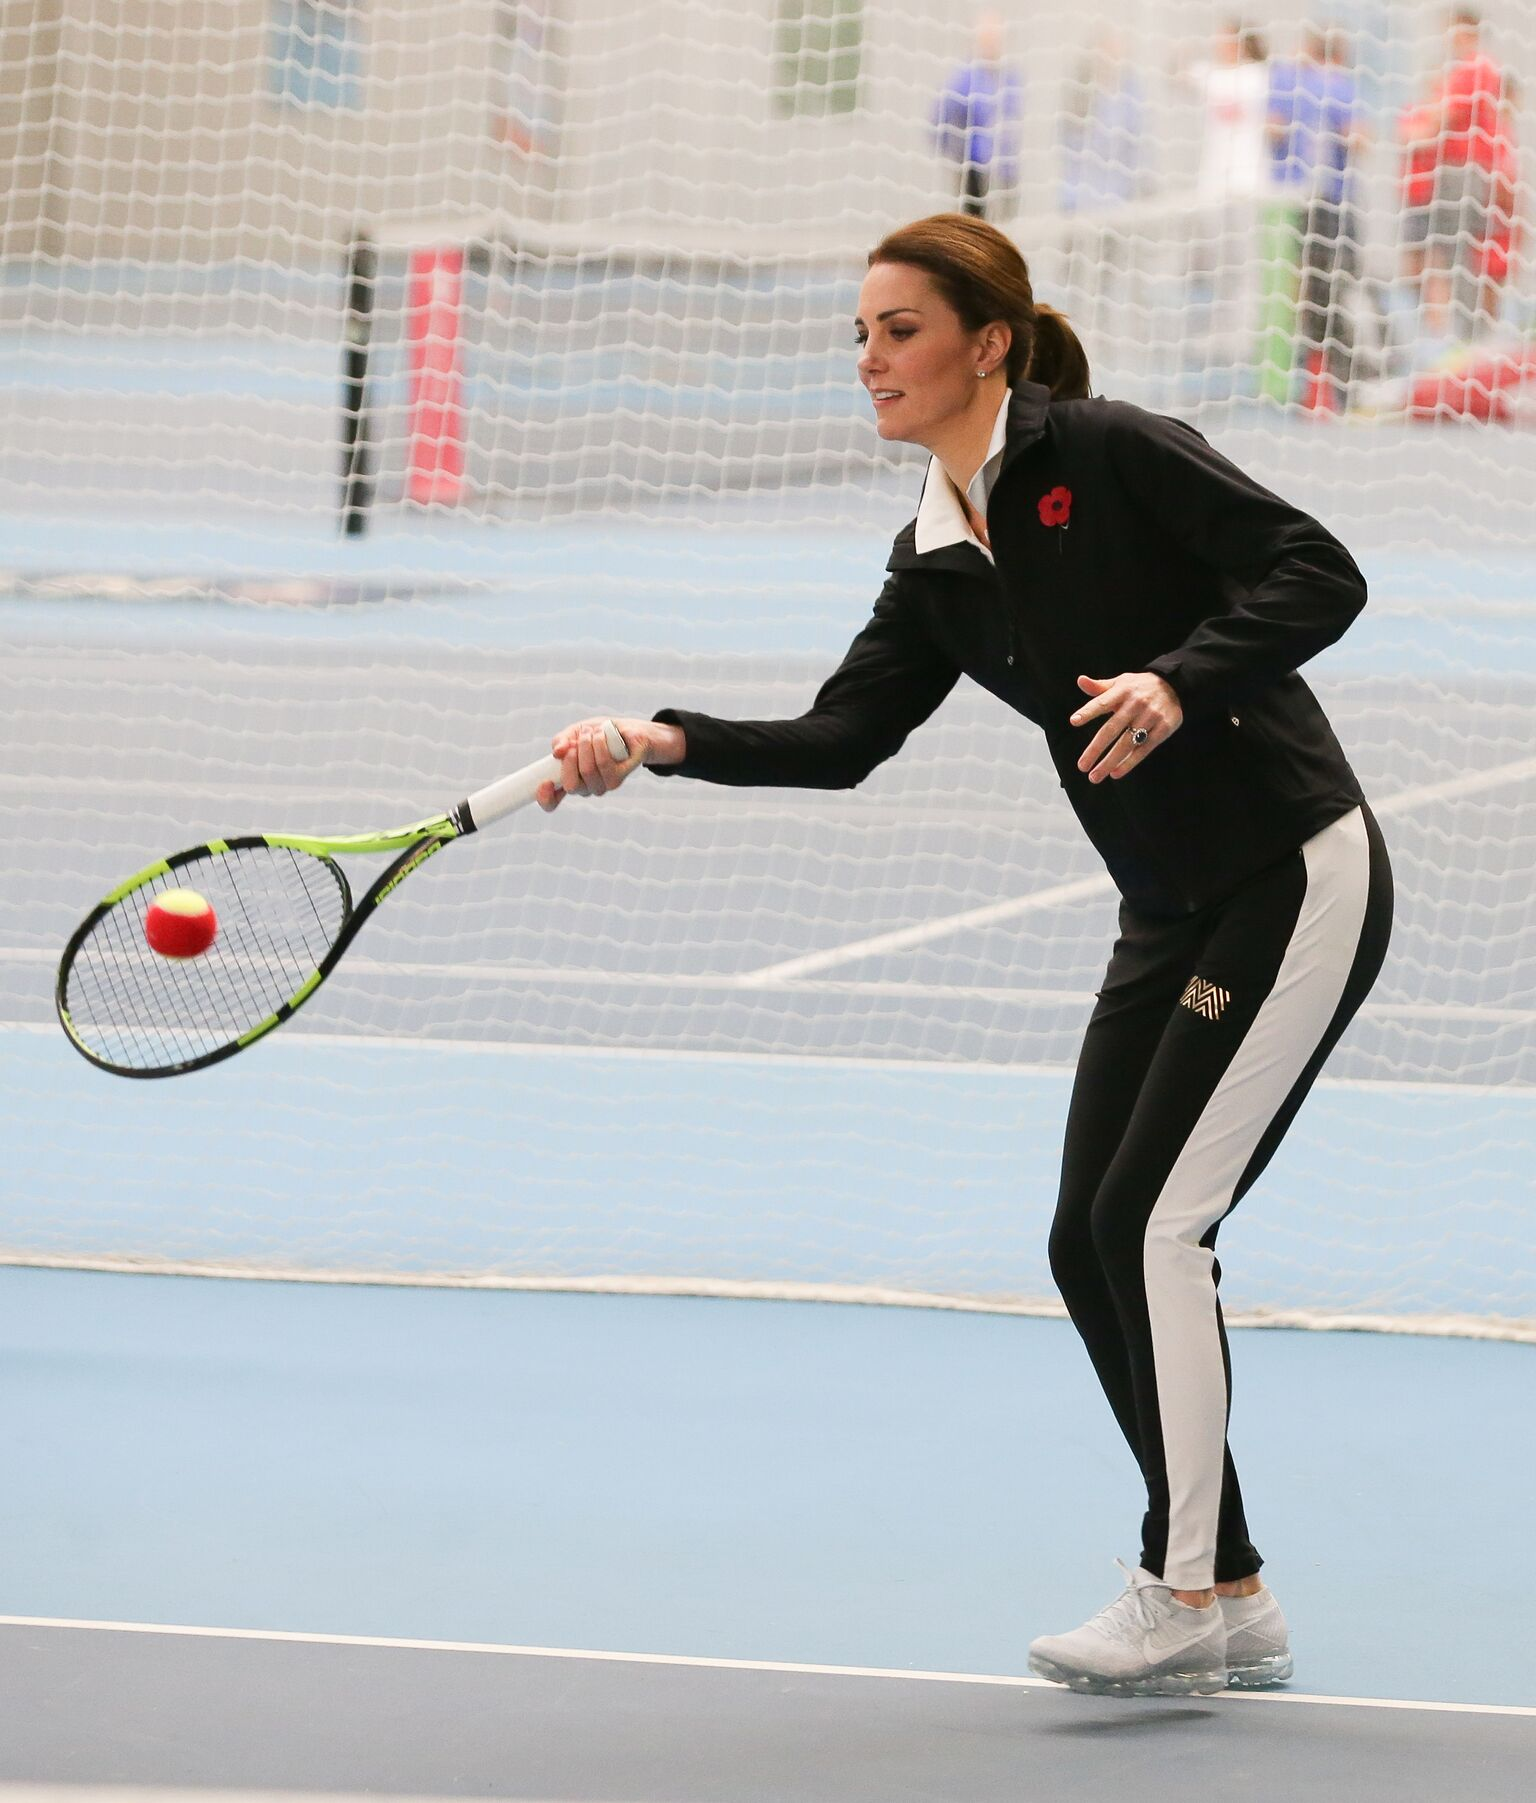 , Duchess of Cambridge plays a Tennis for Kids session at the Lawn Tennis Association | Getty Images